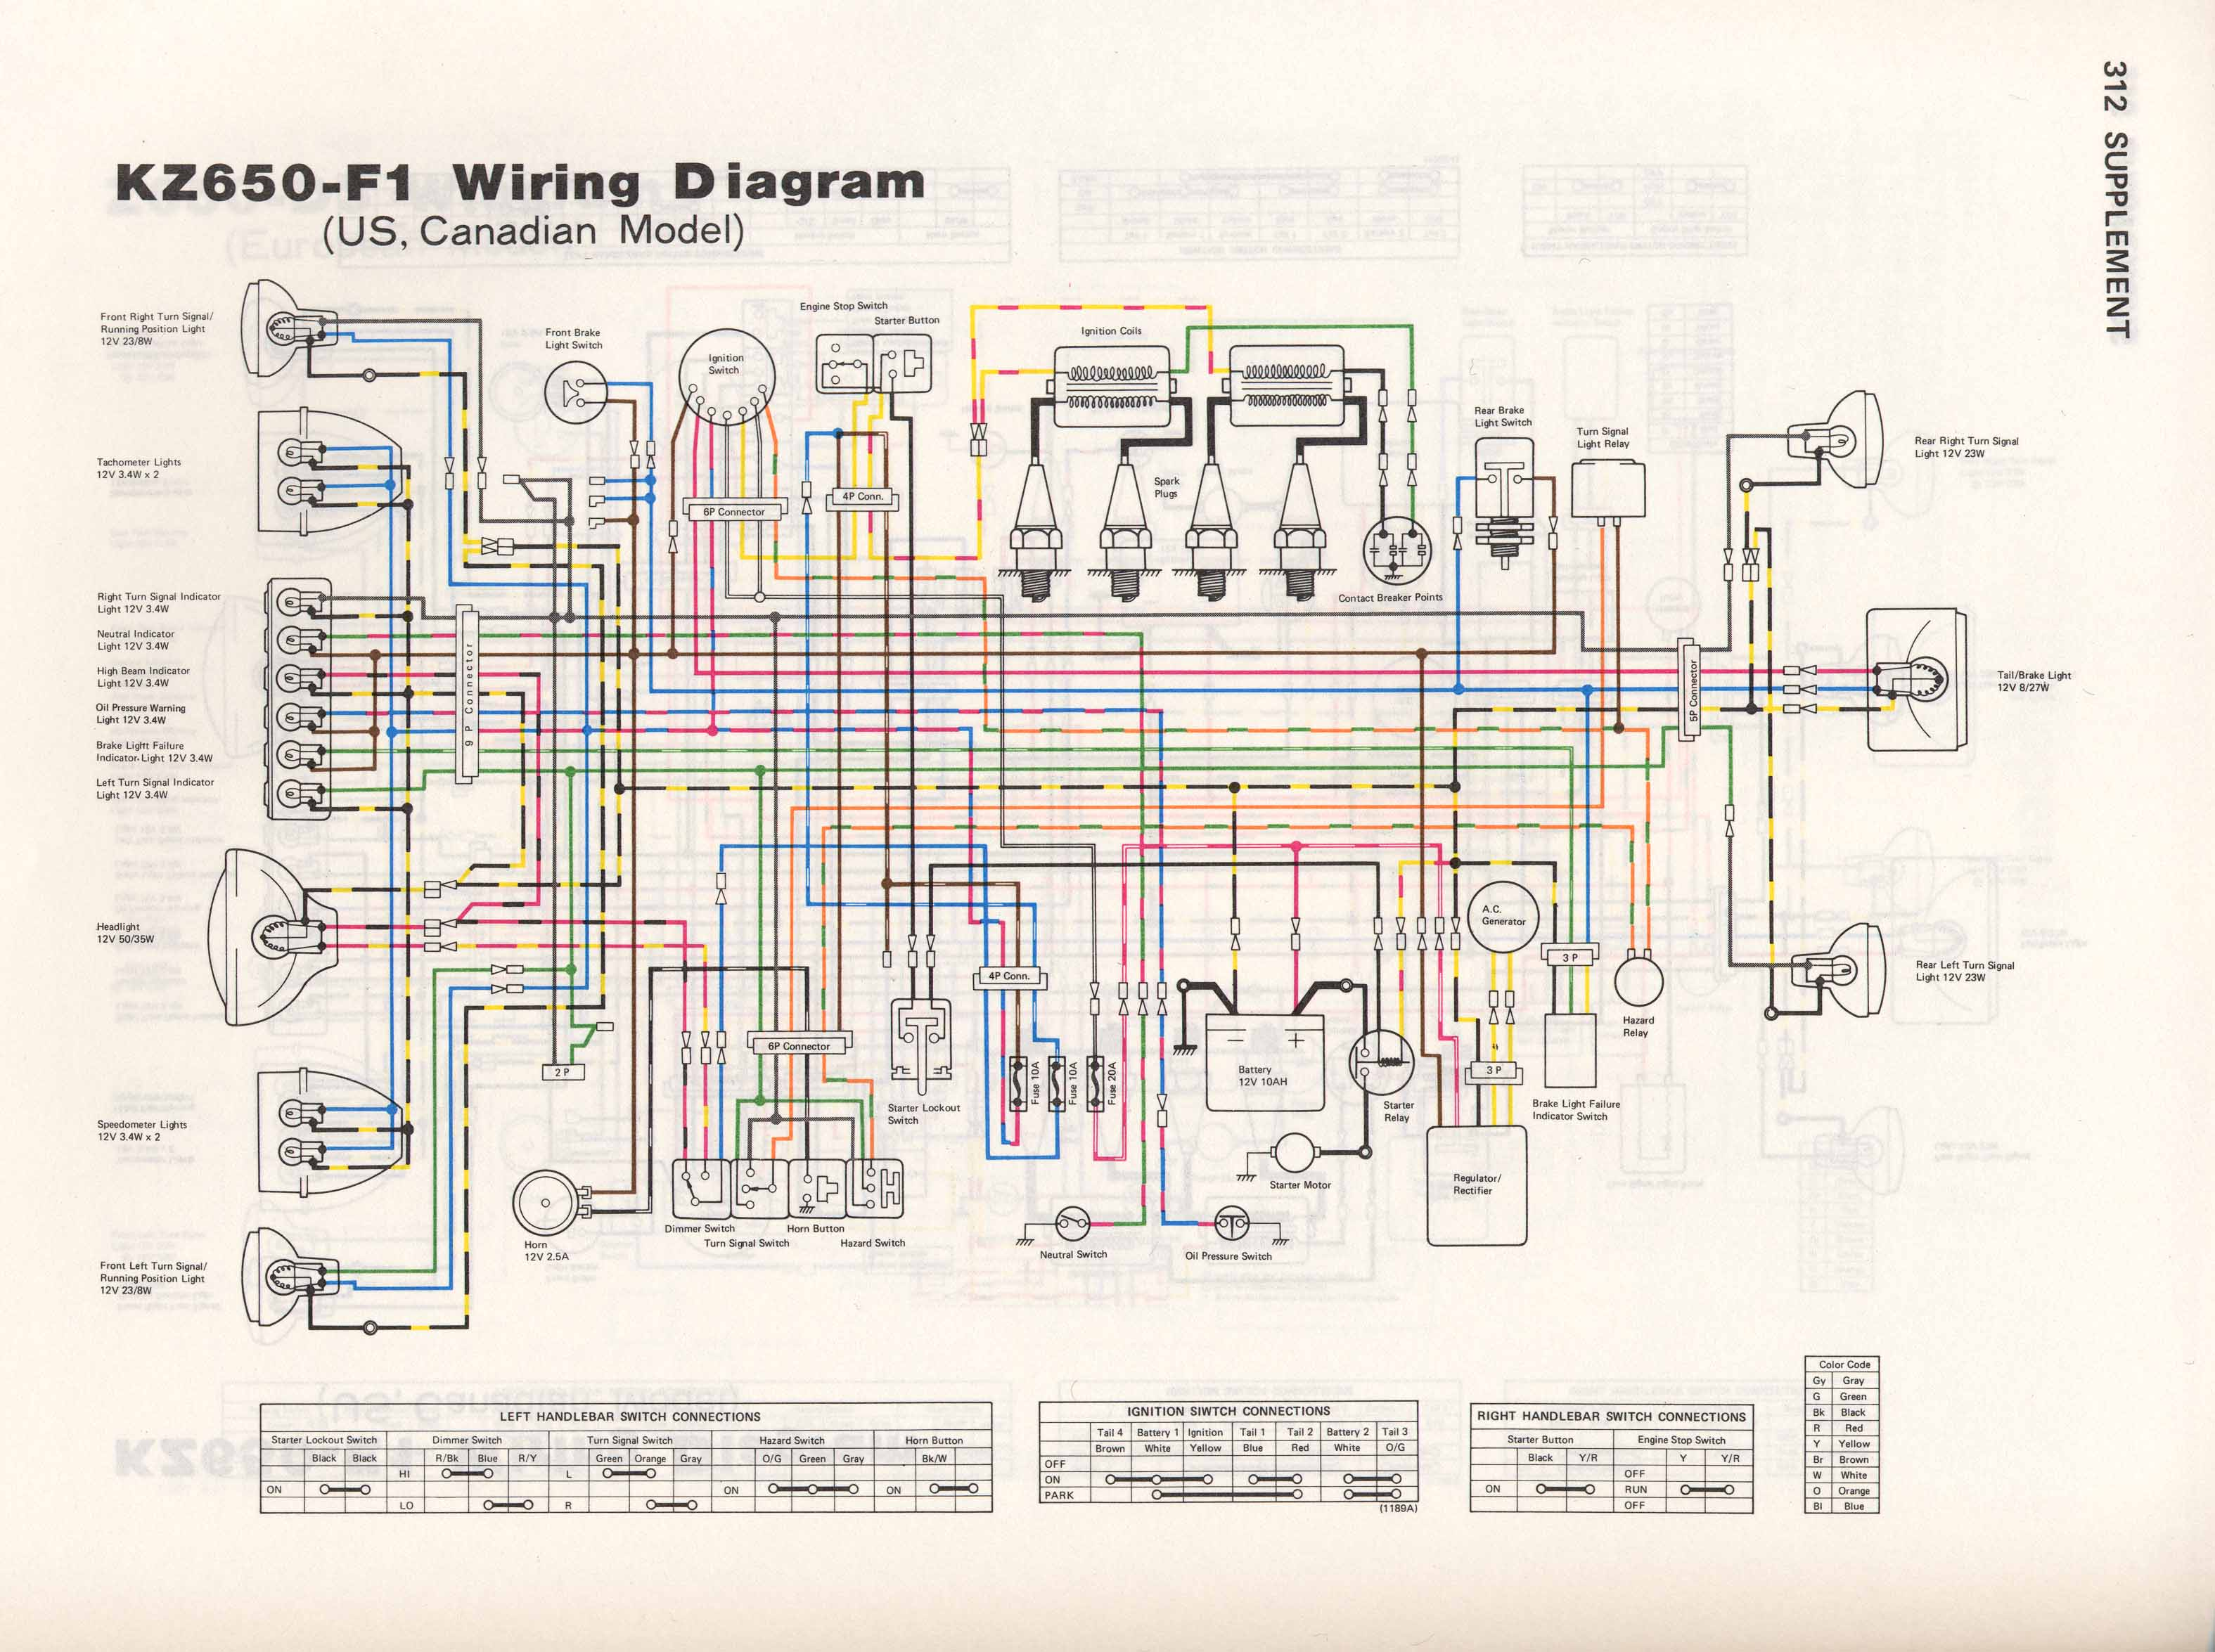 KZ650 F1 kz650 info wiring diagrams 1981 kawasaki kz750 wiring harness at readyjetset.co